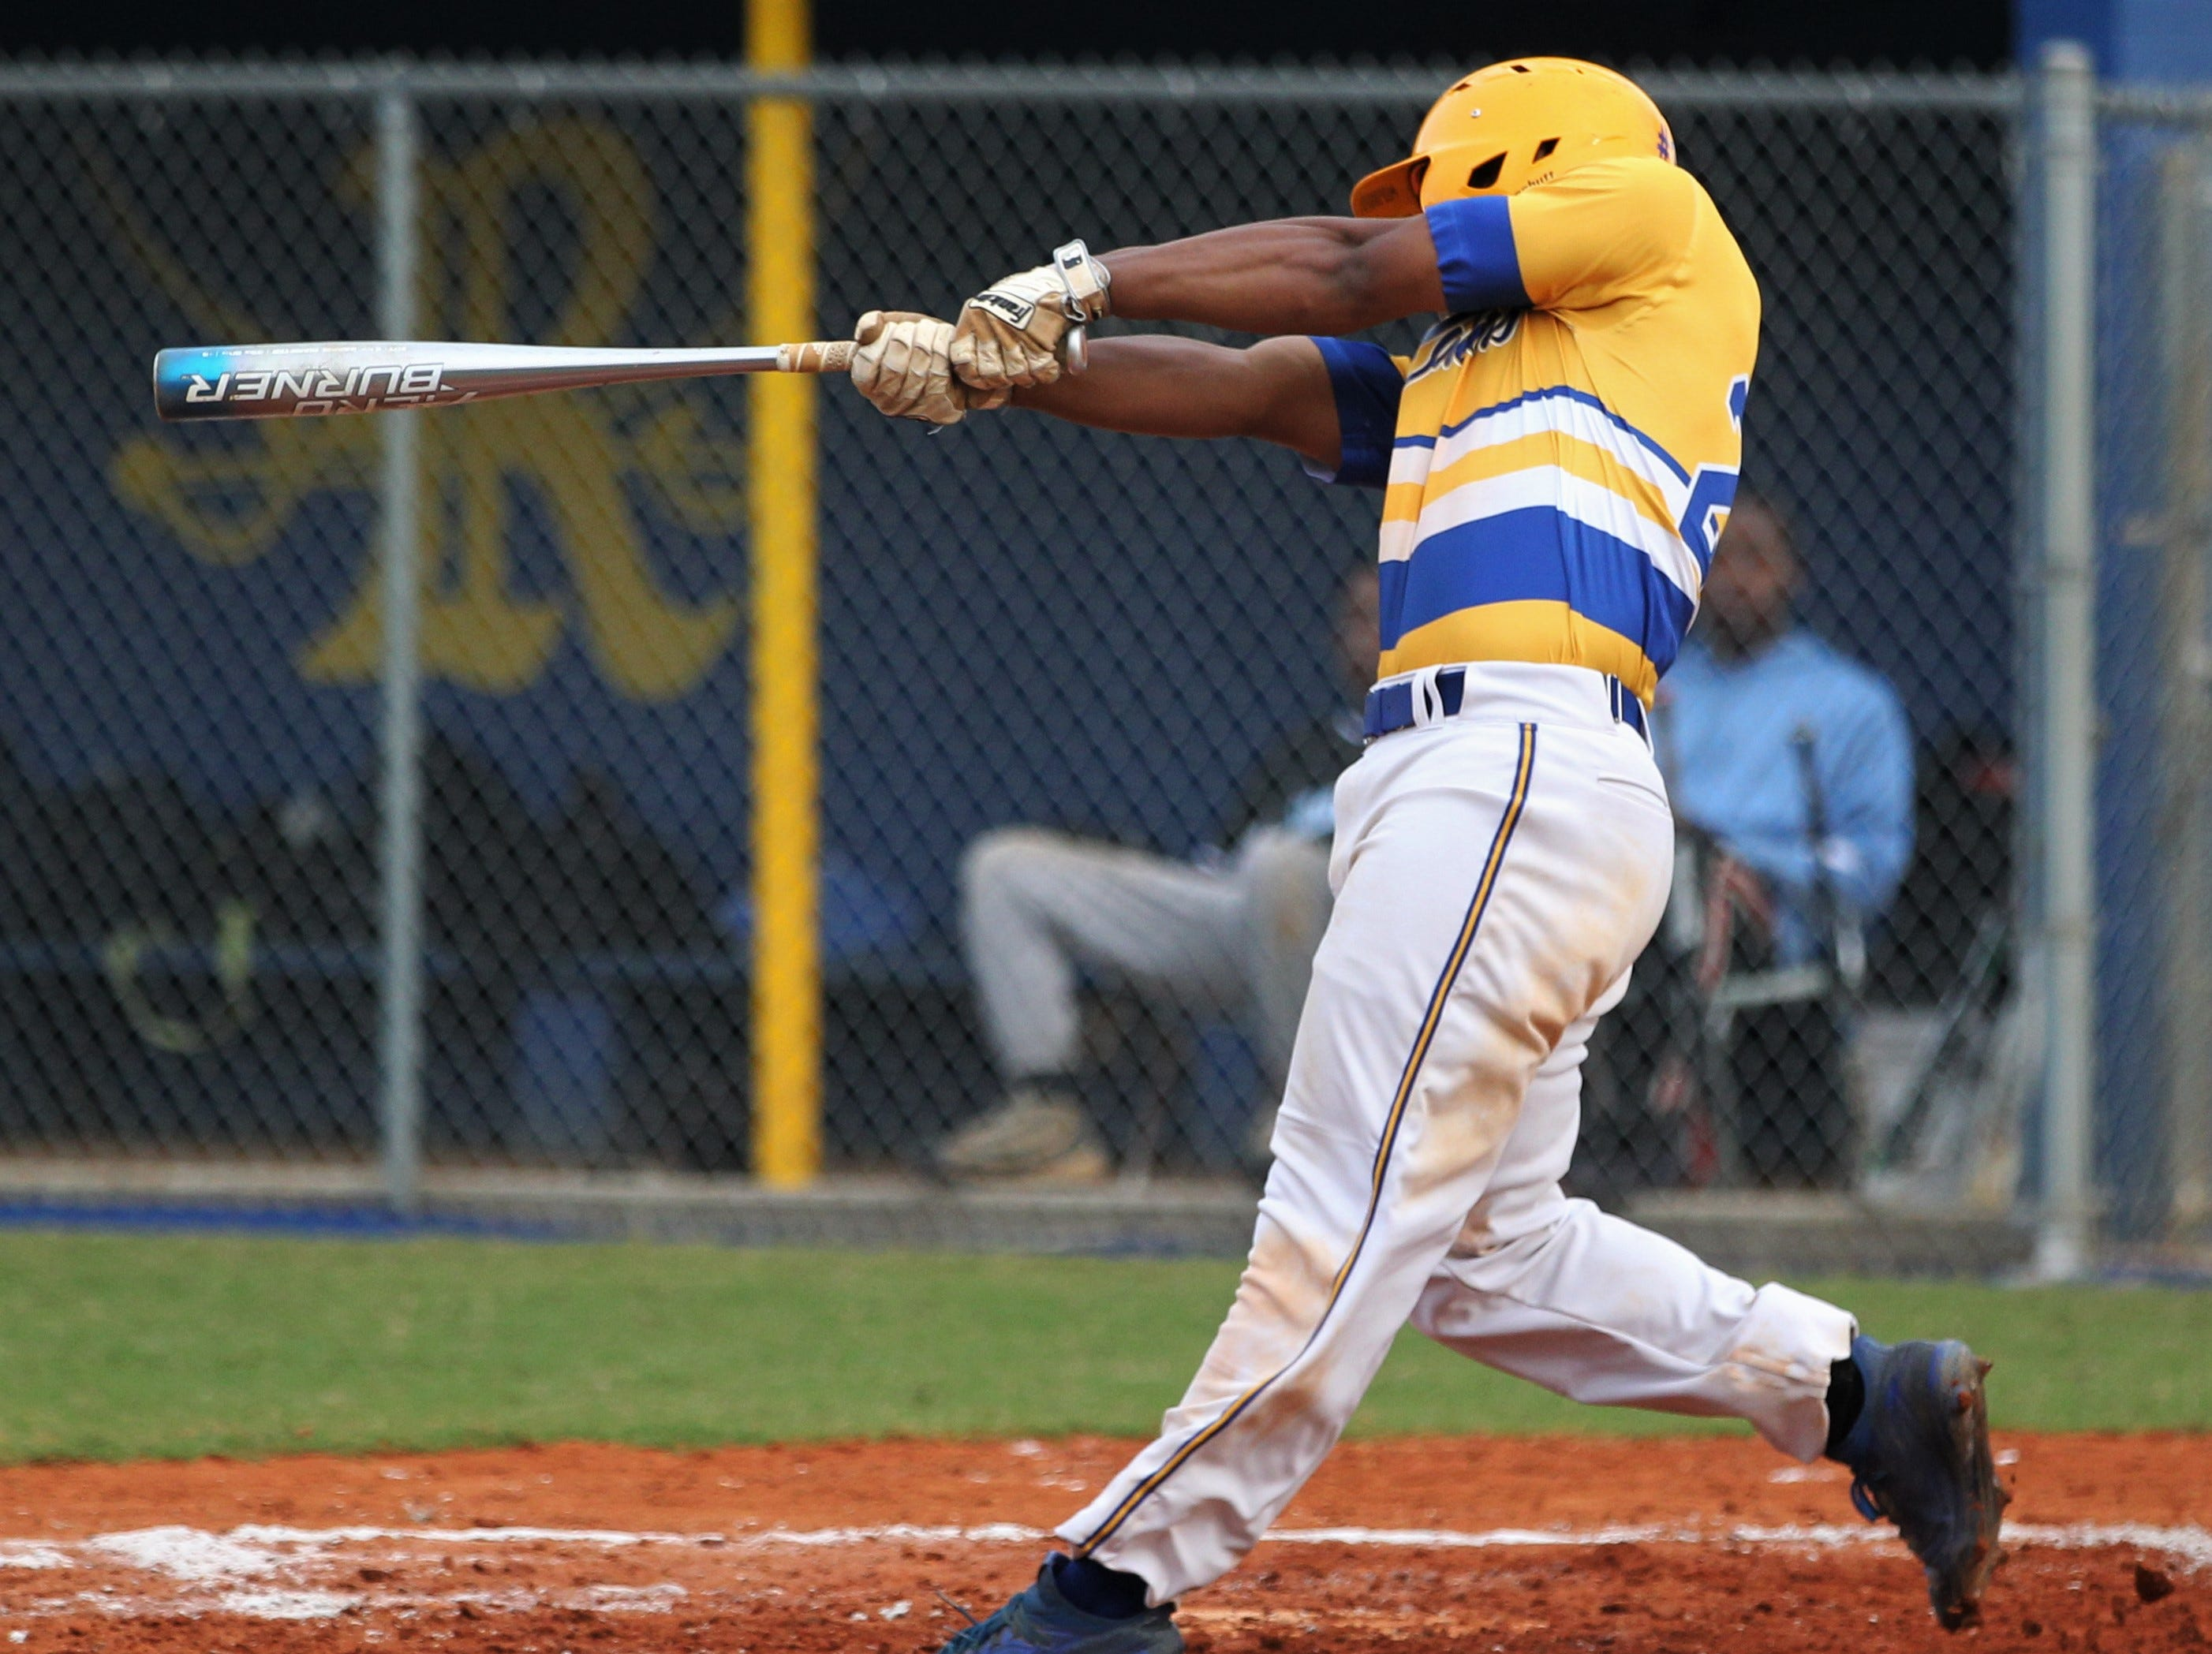 Rickards sophomore Will Brown follows through on a two-run triple as Rickards beat Gadsden County 18-0 in three innings on Friday, April 12, 2019.